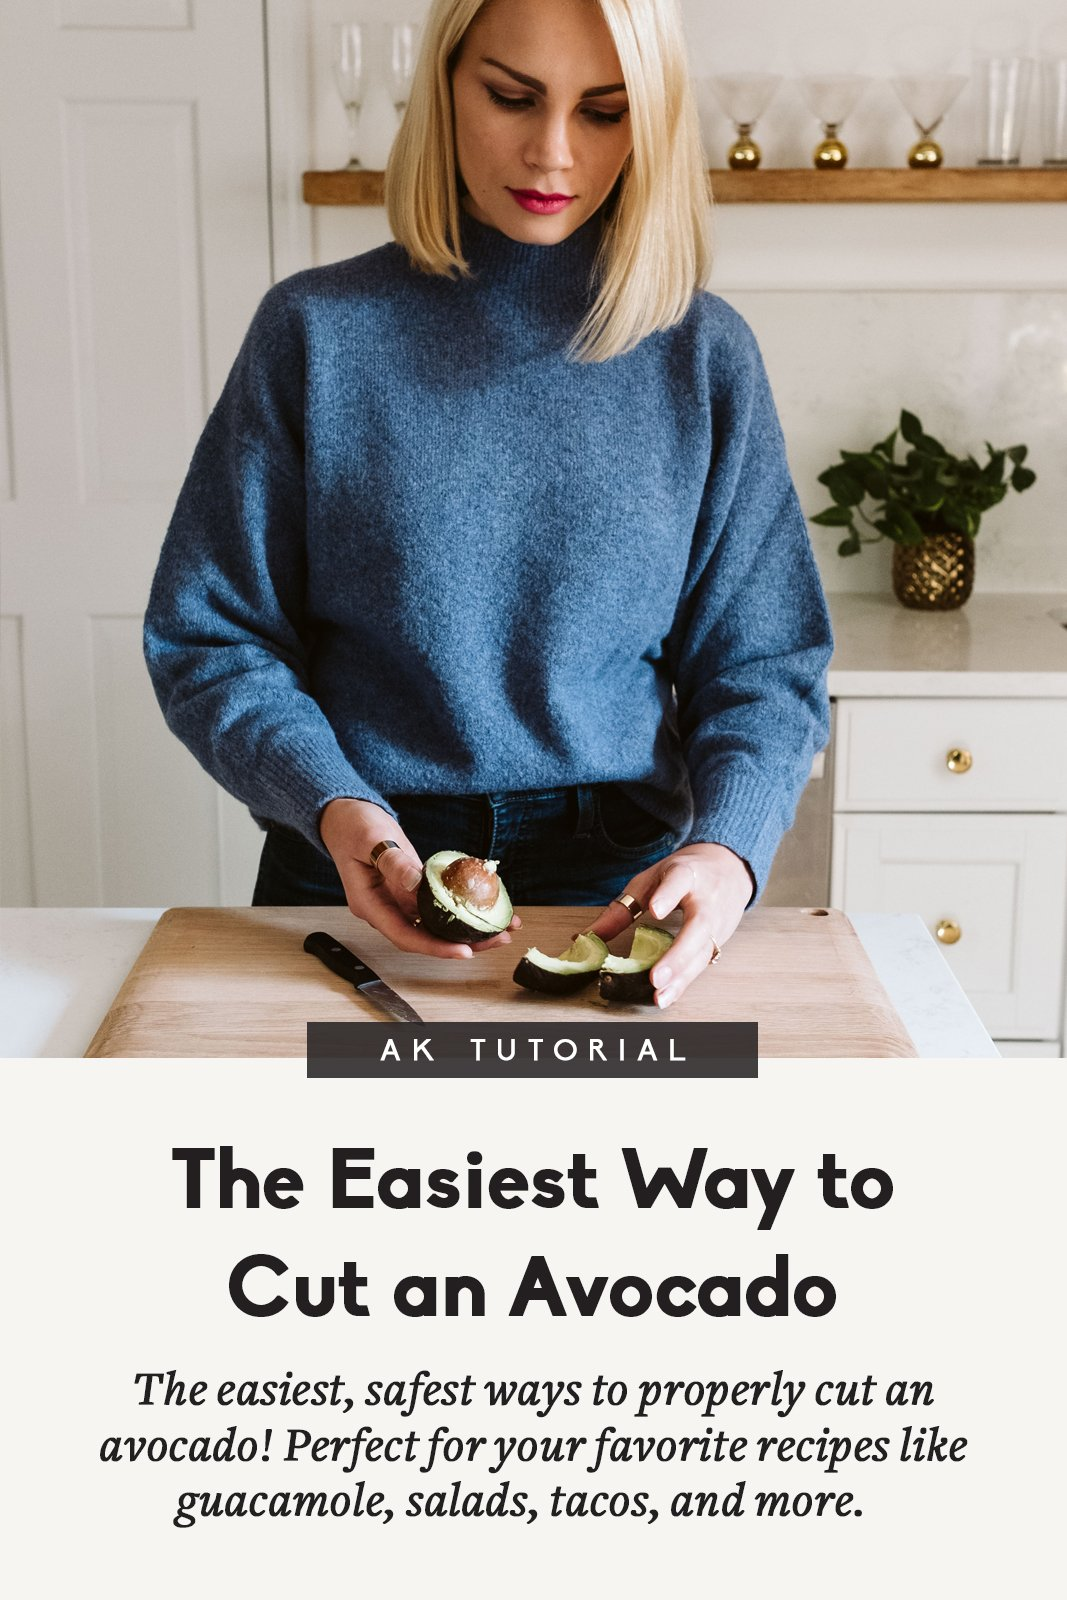 blonde woman demonstrating how to cut an avocado with a title below